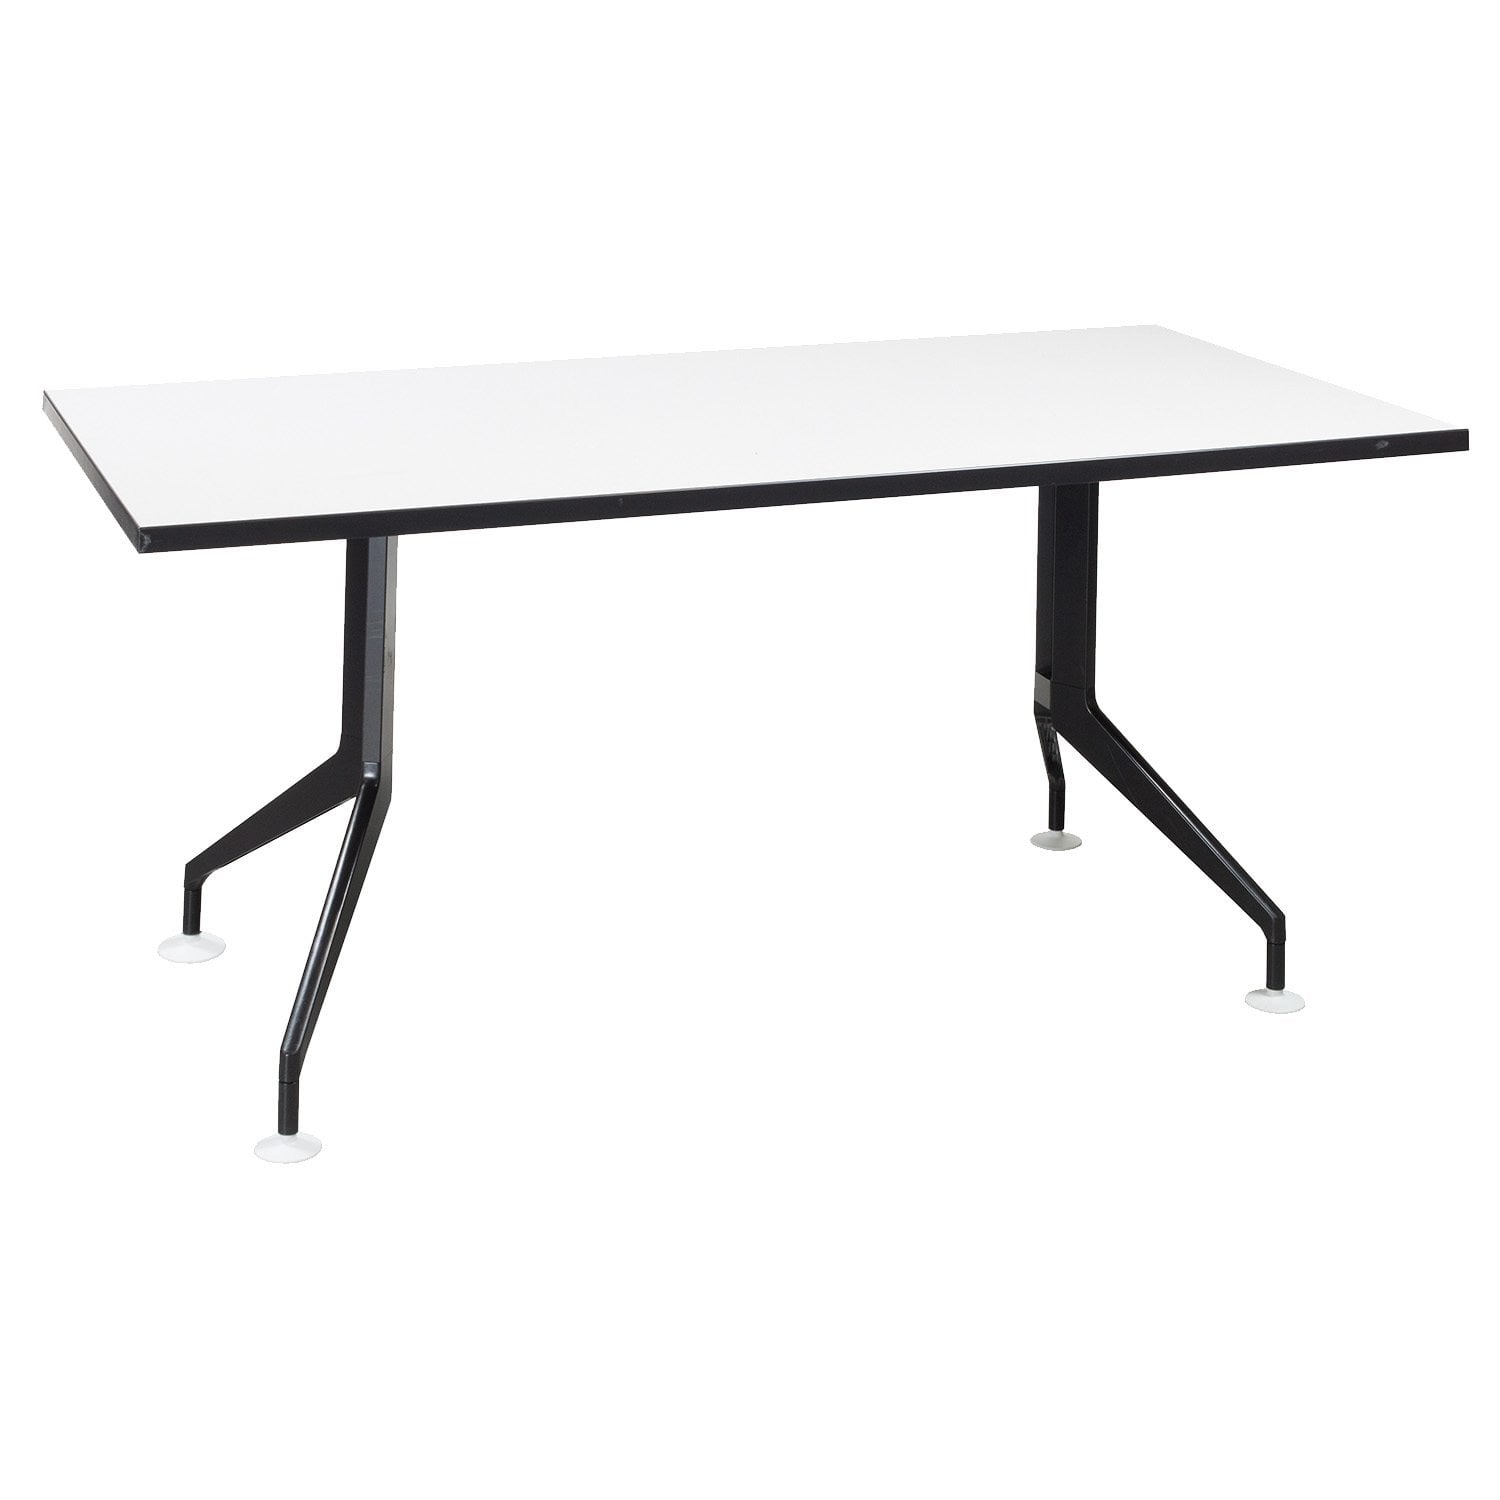 Haworth Planes Collaborative Used 60 Inch Training Table